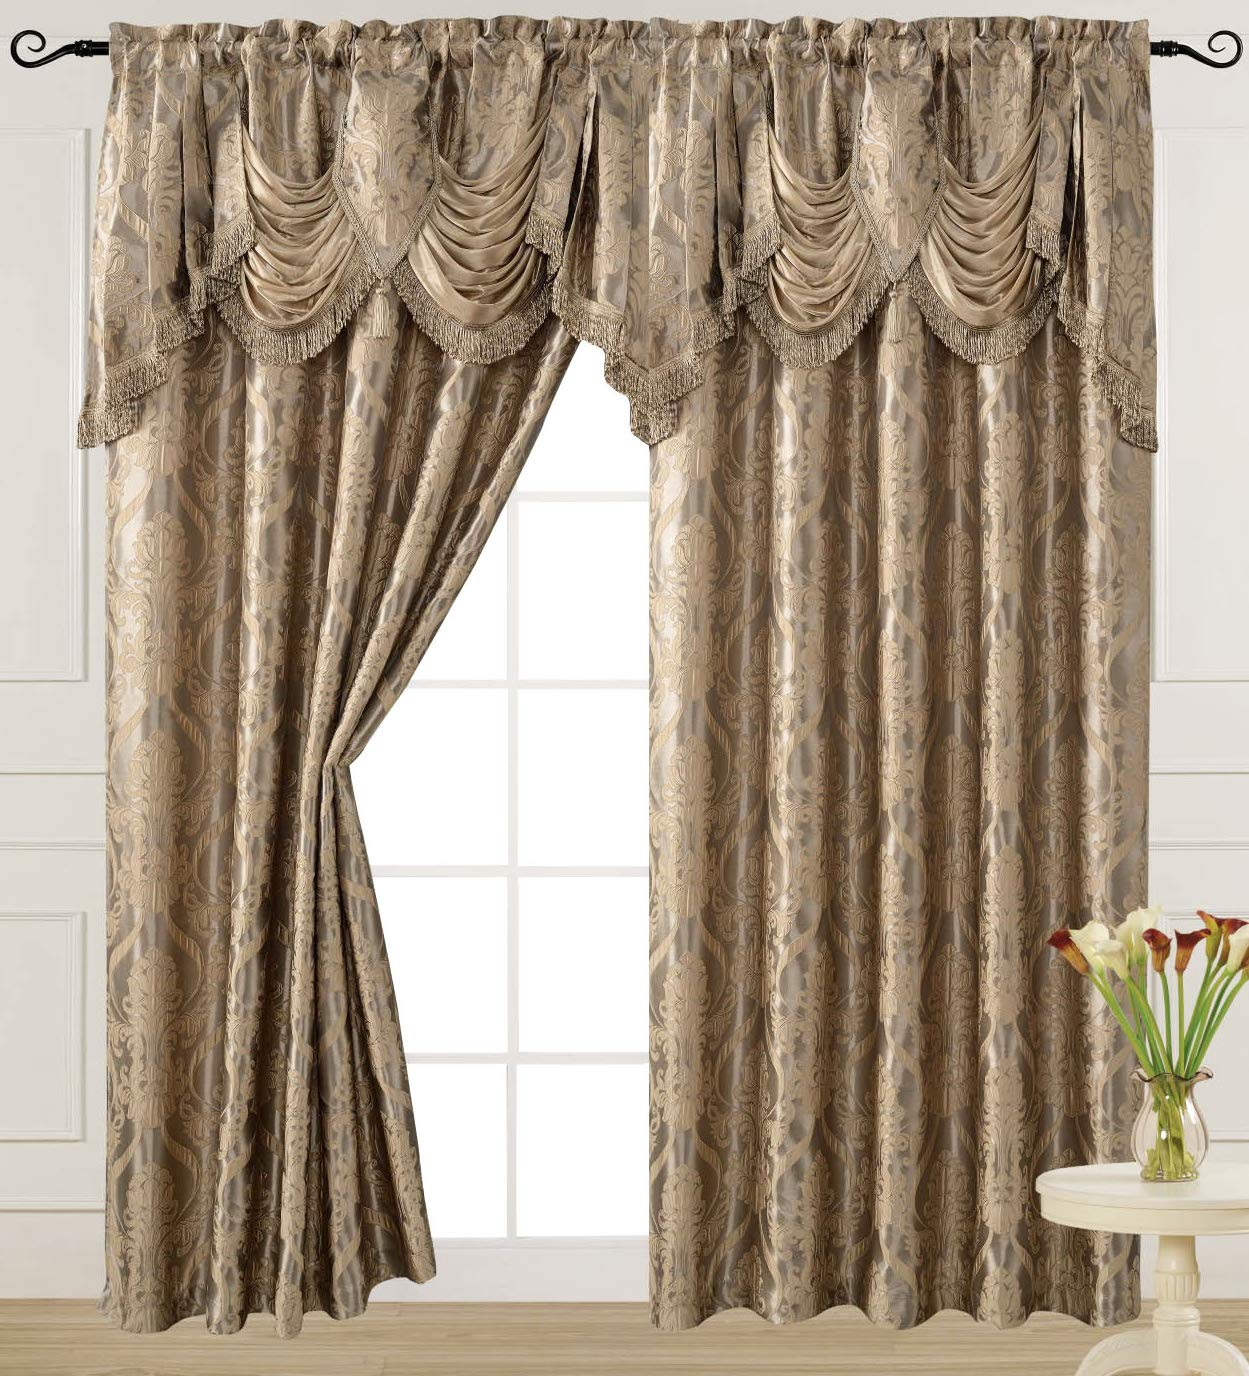 v Luxury Jacquard Curtain Panel with Attached Waterfall Valance, 54 by 84-Inch Ashley Light Taupe by v